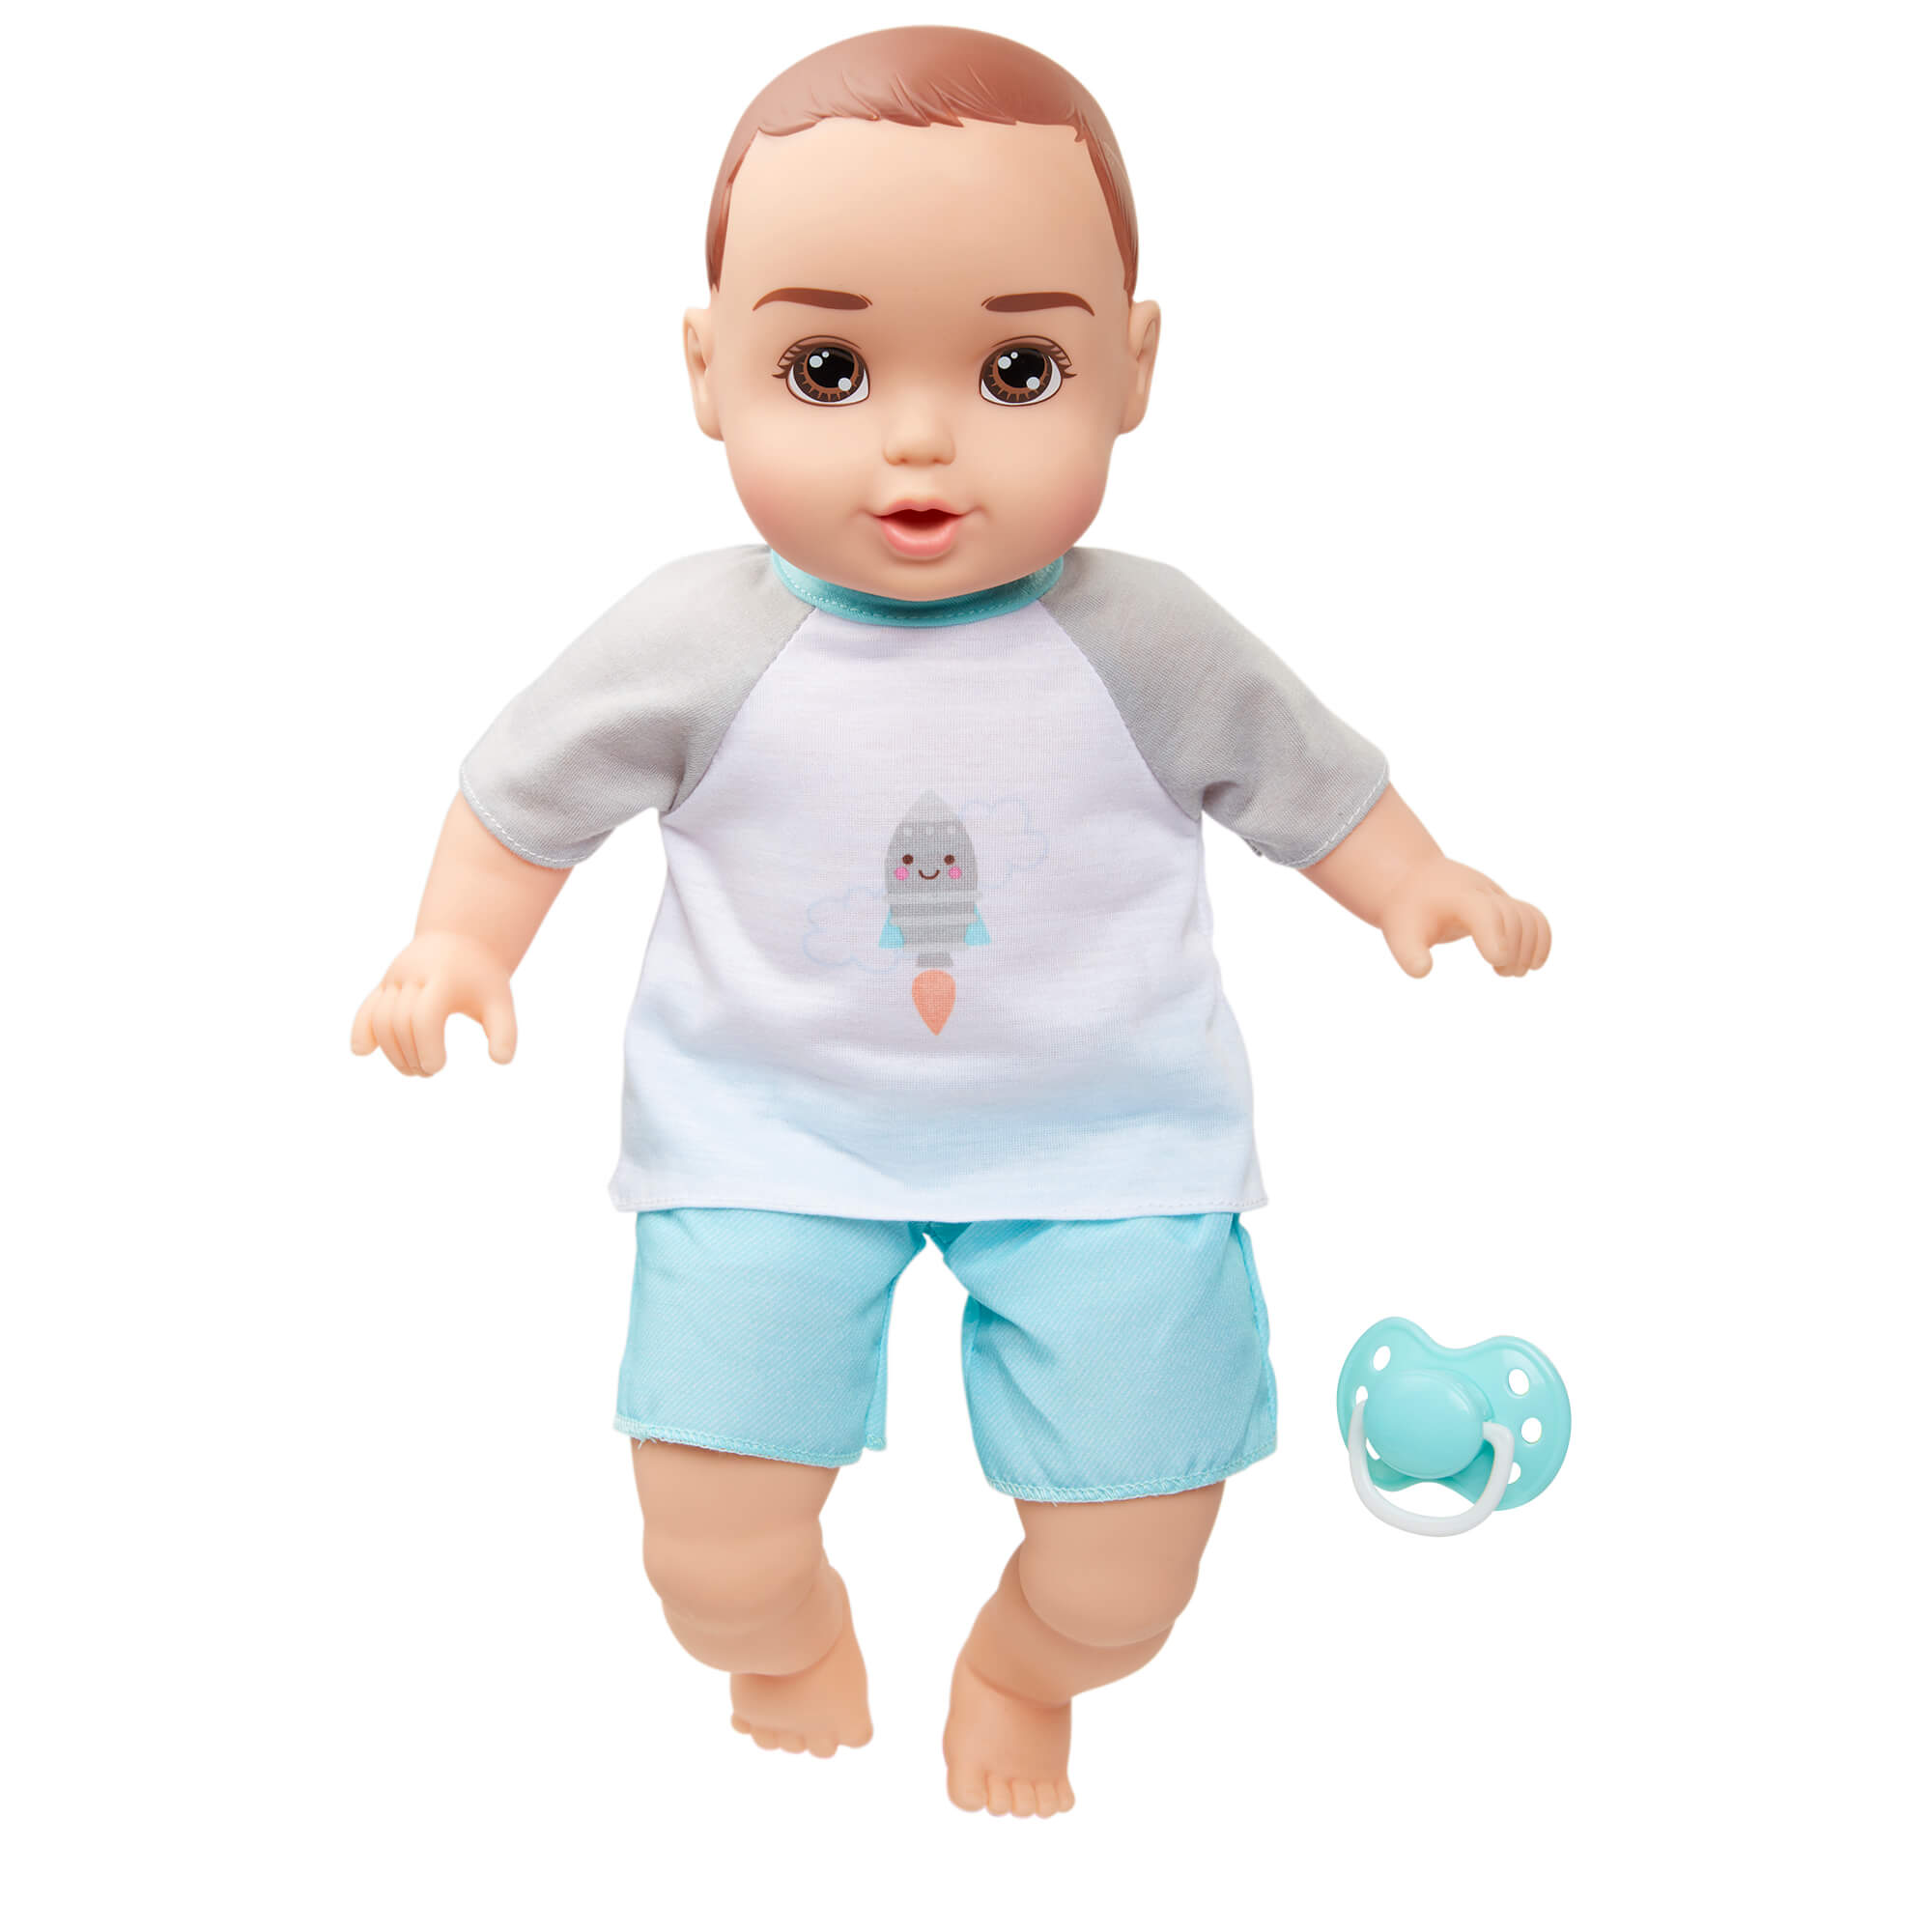 Perfectly Cute Baby 14 inch My Sweet Baby Boy Doll